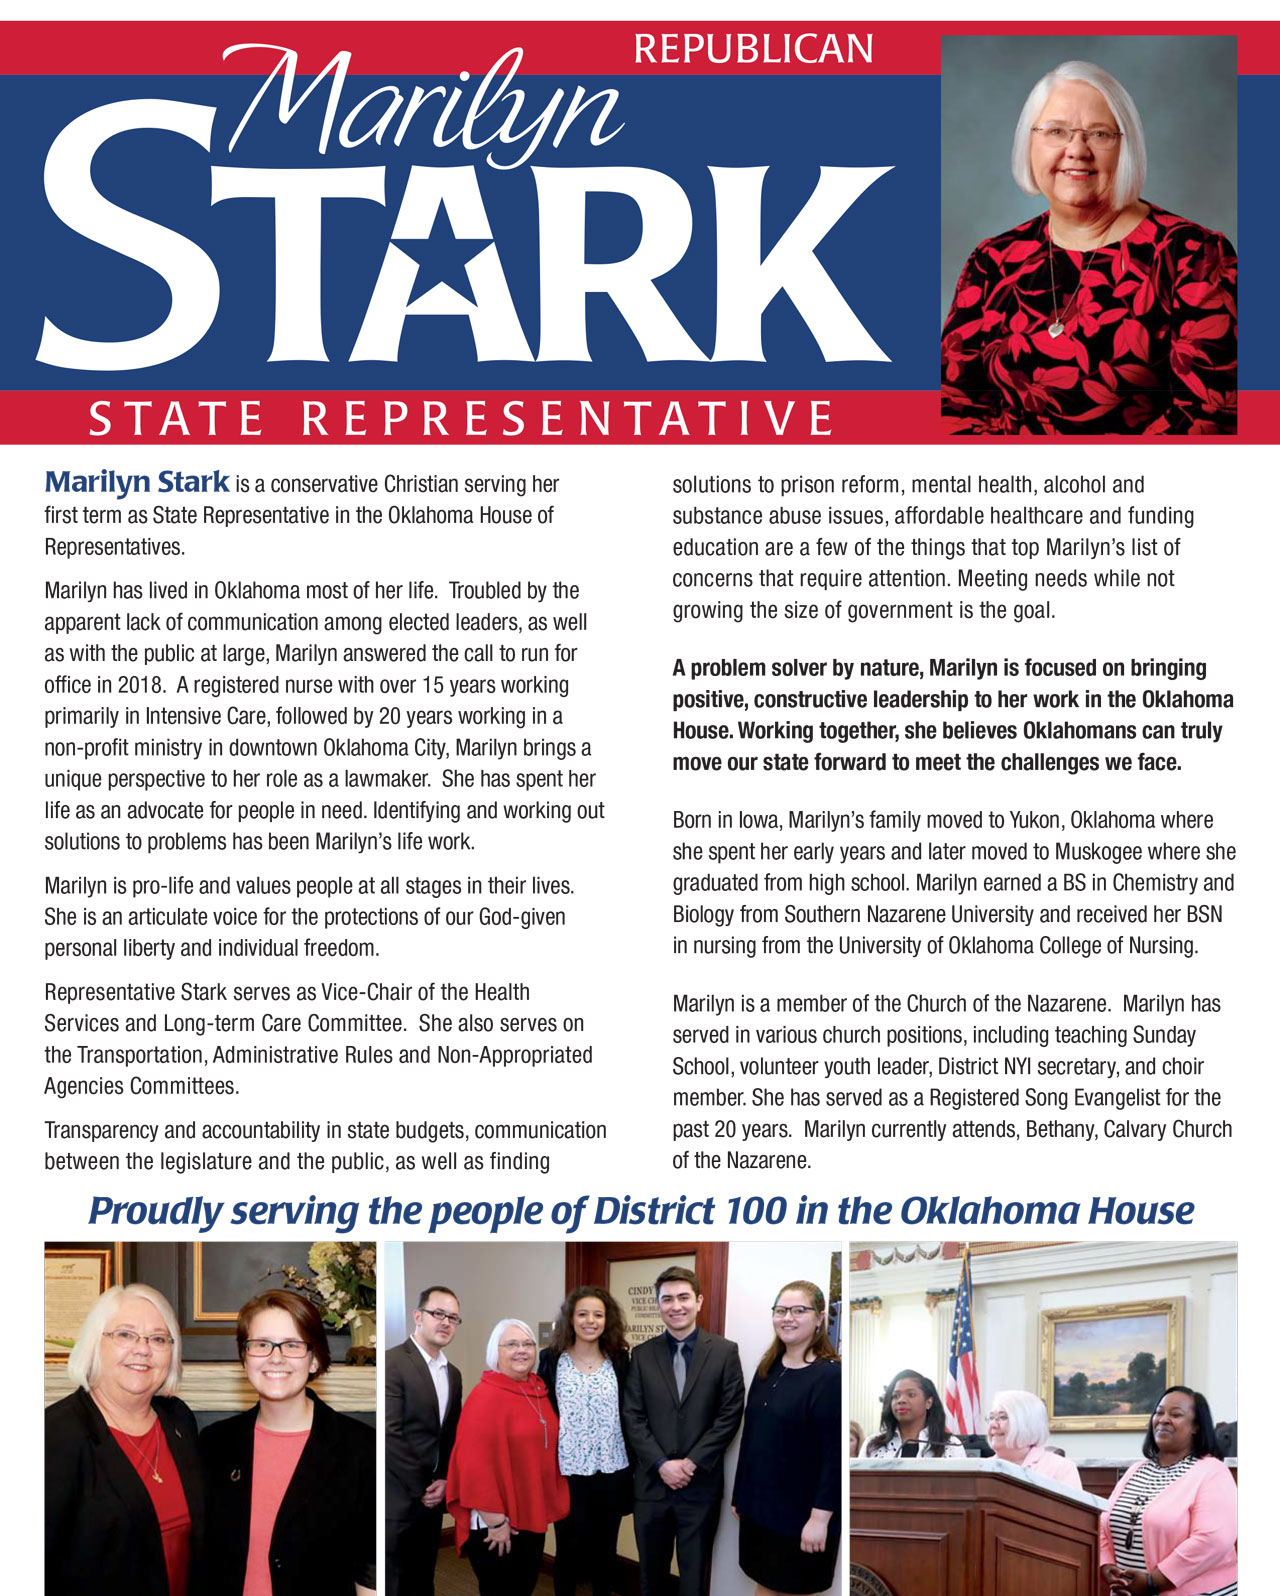 Proudly serving the people of District 100 in the Oklahoma House